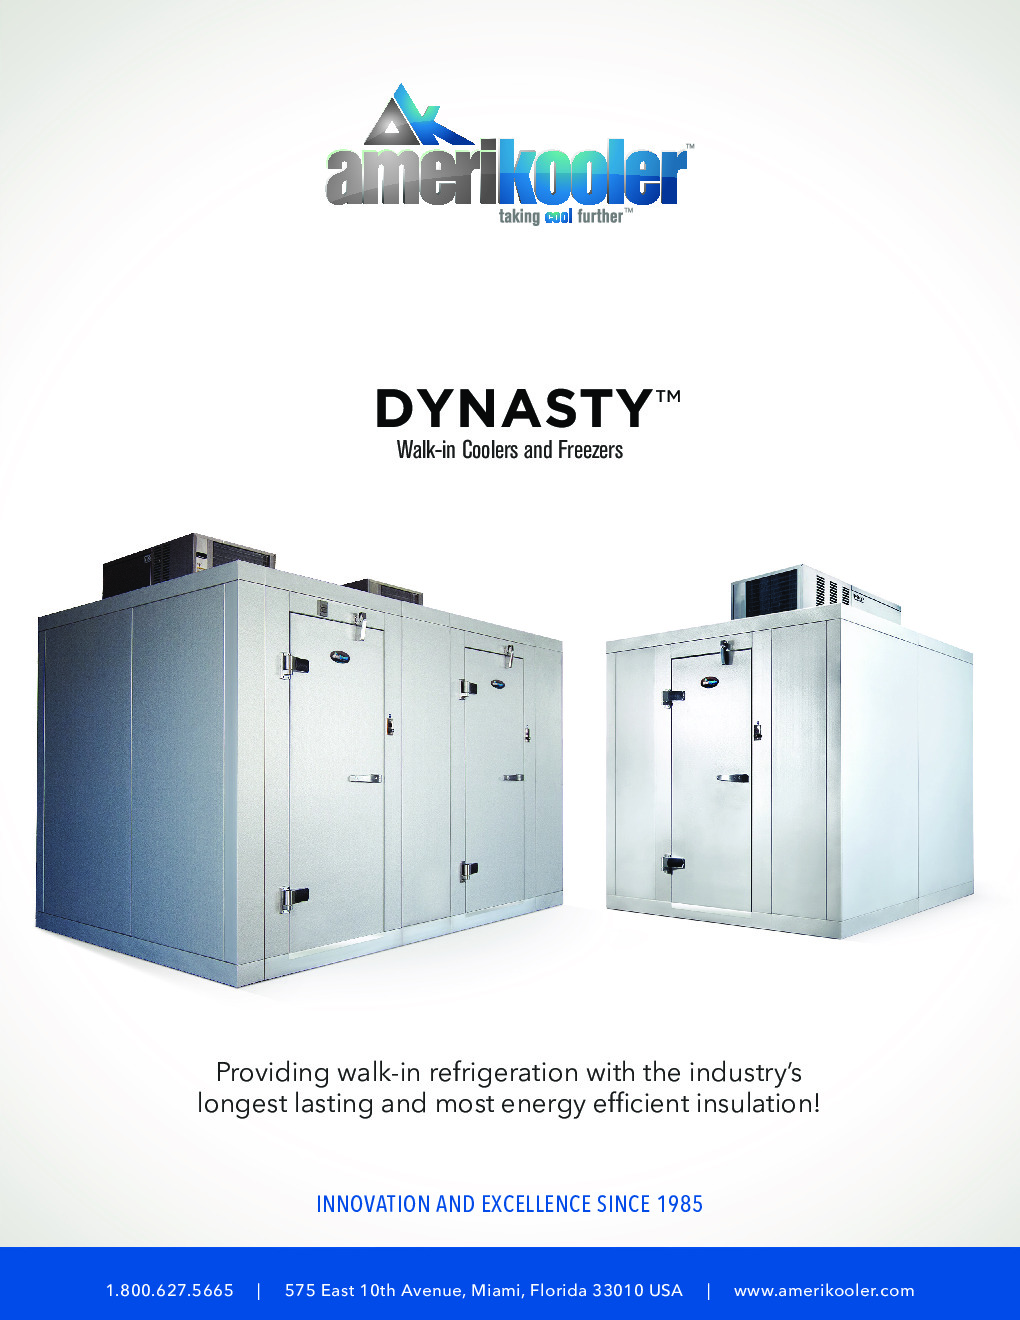 AmeriKooler DW081577F-7/8-RM 8' X 15' Walk-In Cooler, 8' L Cooler with Floor and 7' L Freezer, Remote